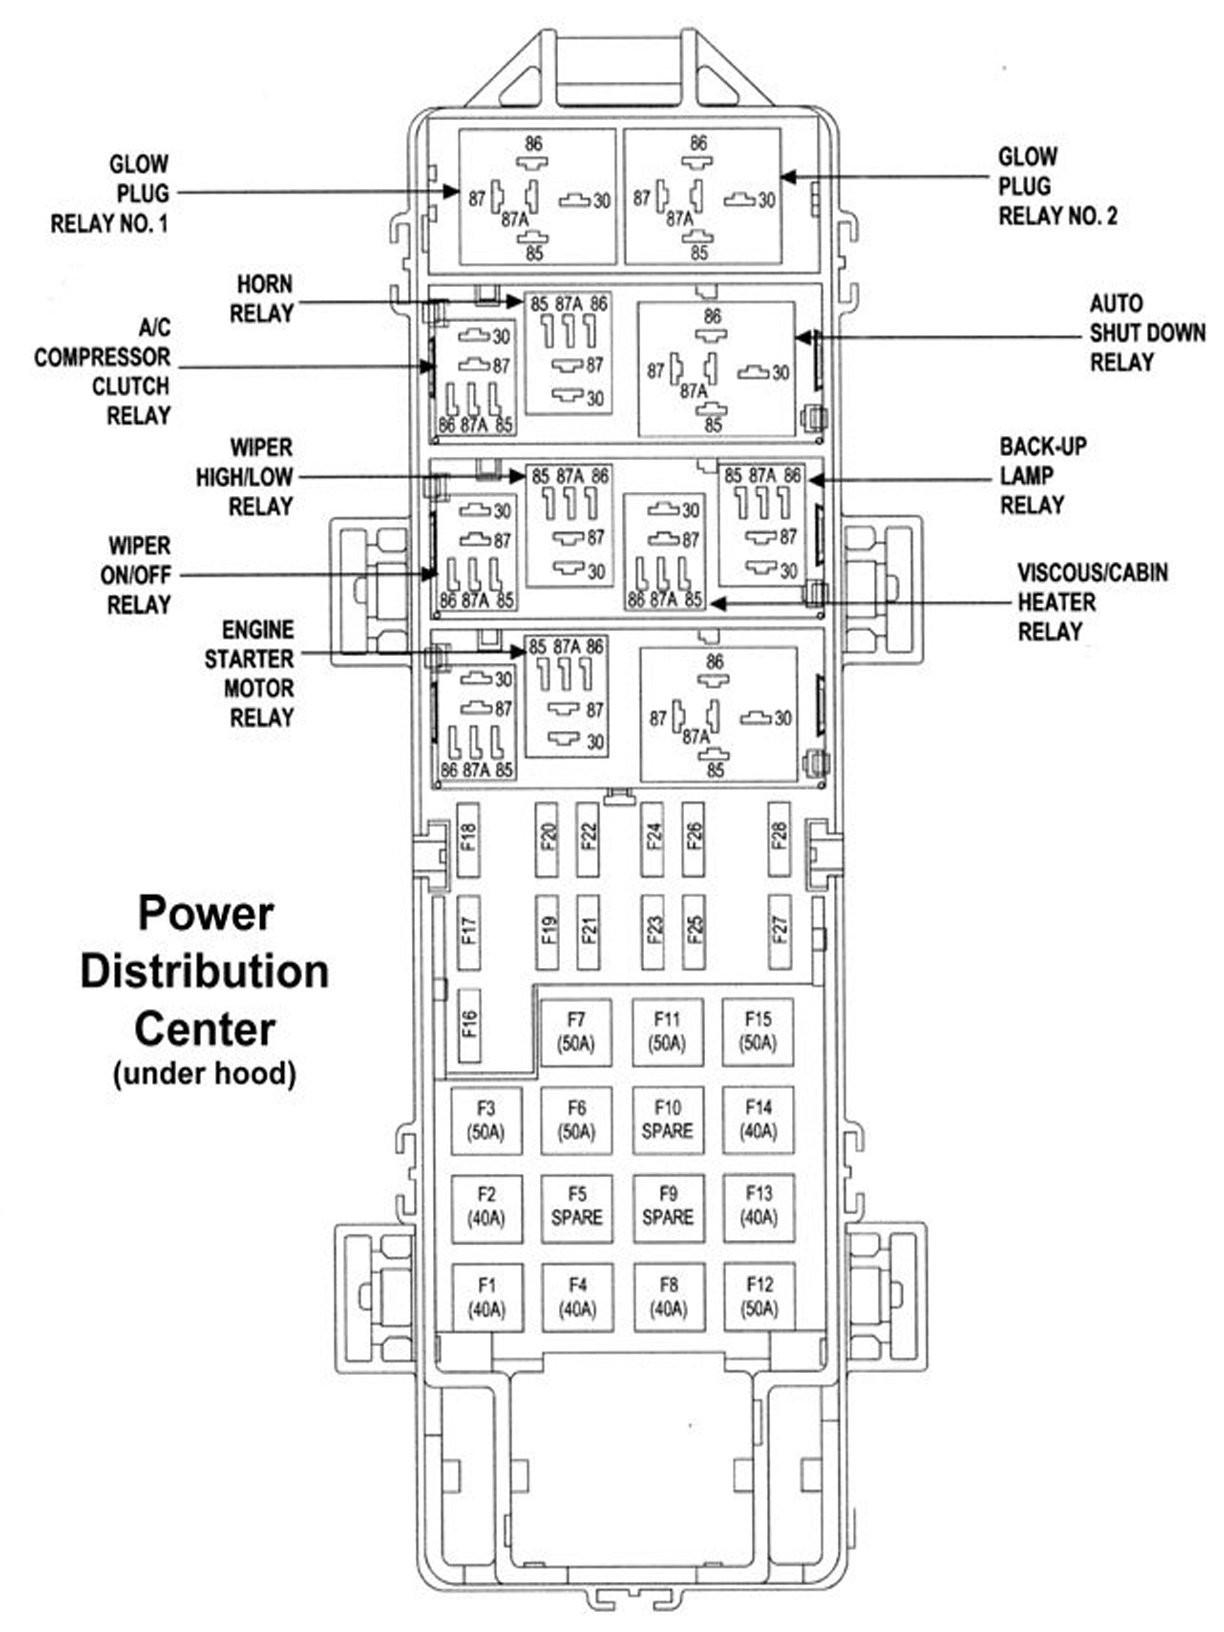 00 Jeep Cherokee Ignition Wiring Diagram - Auto Electrical ...  Jeep Grand Cherokee Wiring Diagram on